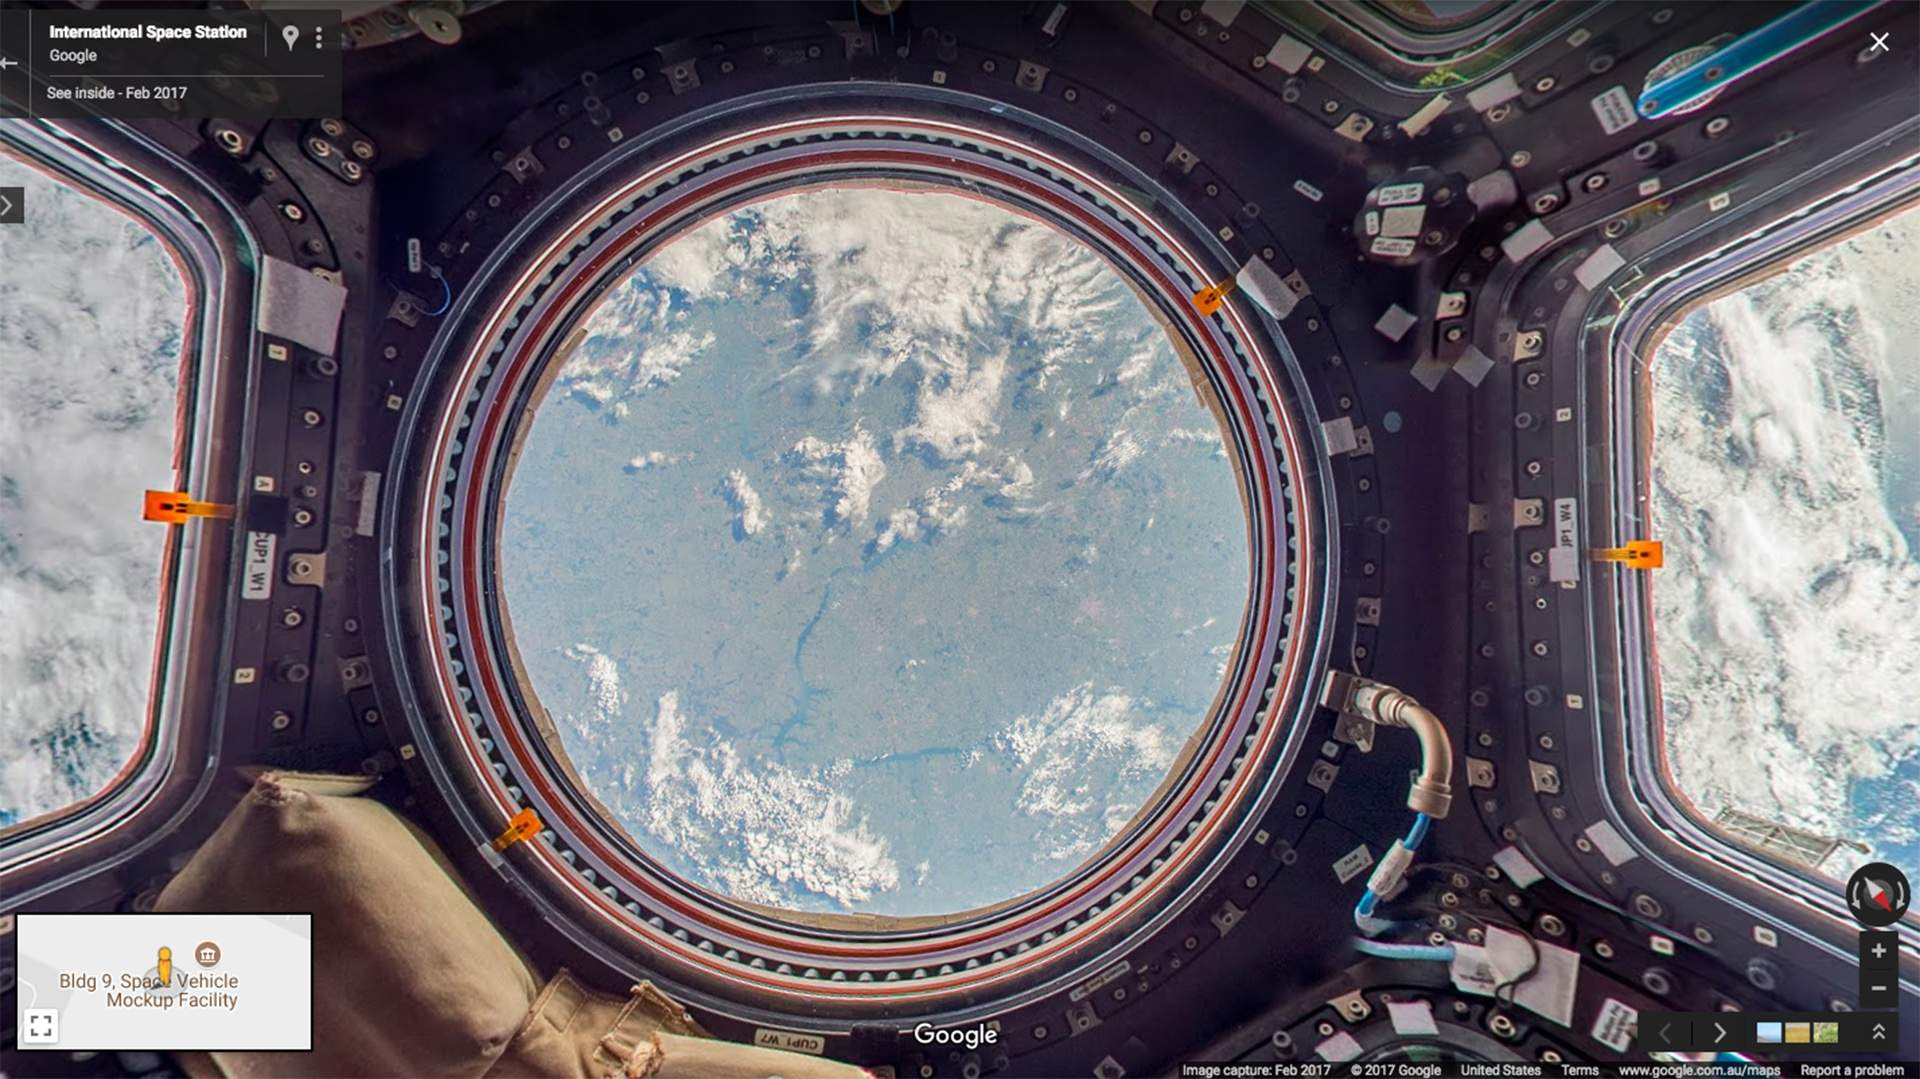 You Can Now Explore the International Space Station with Google Street View